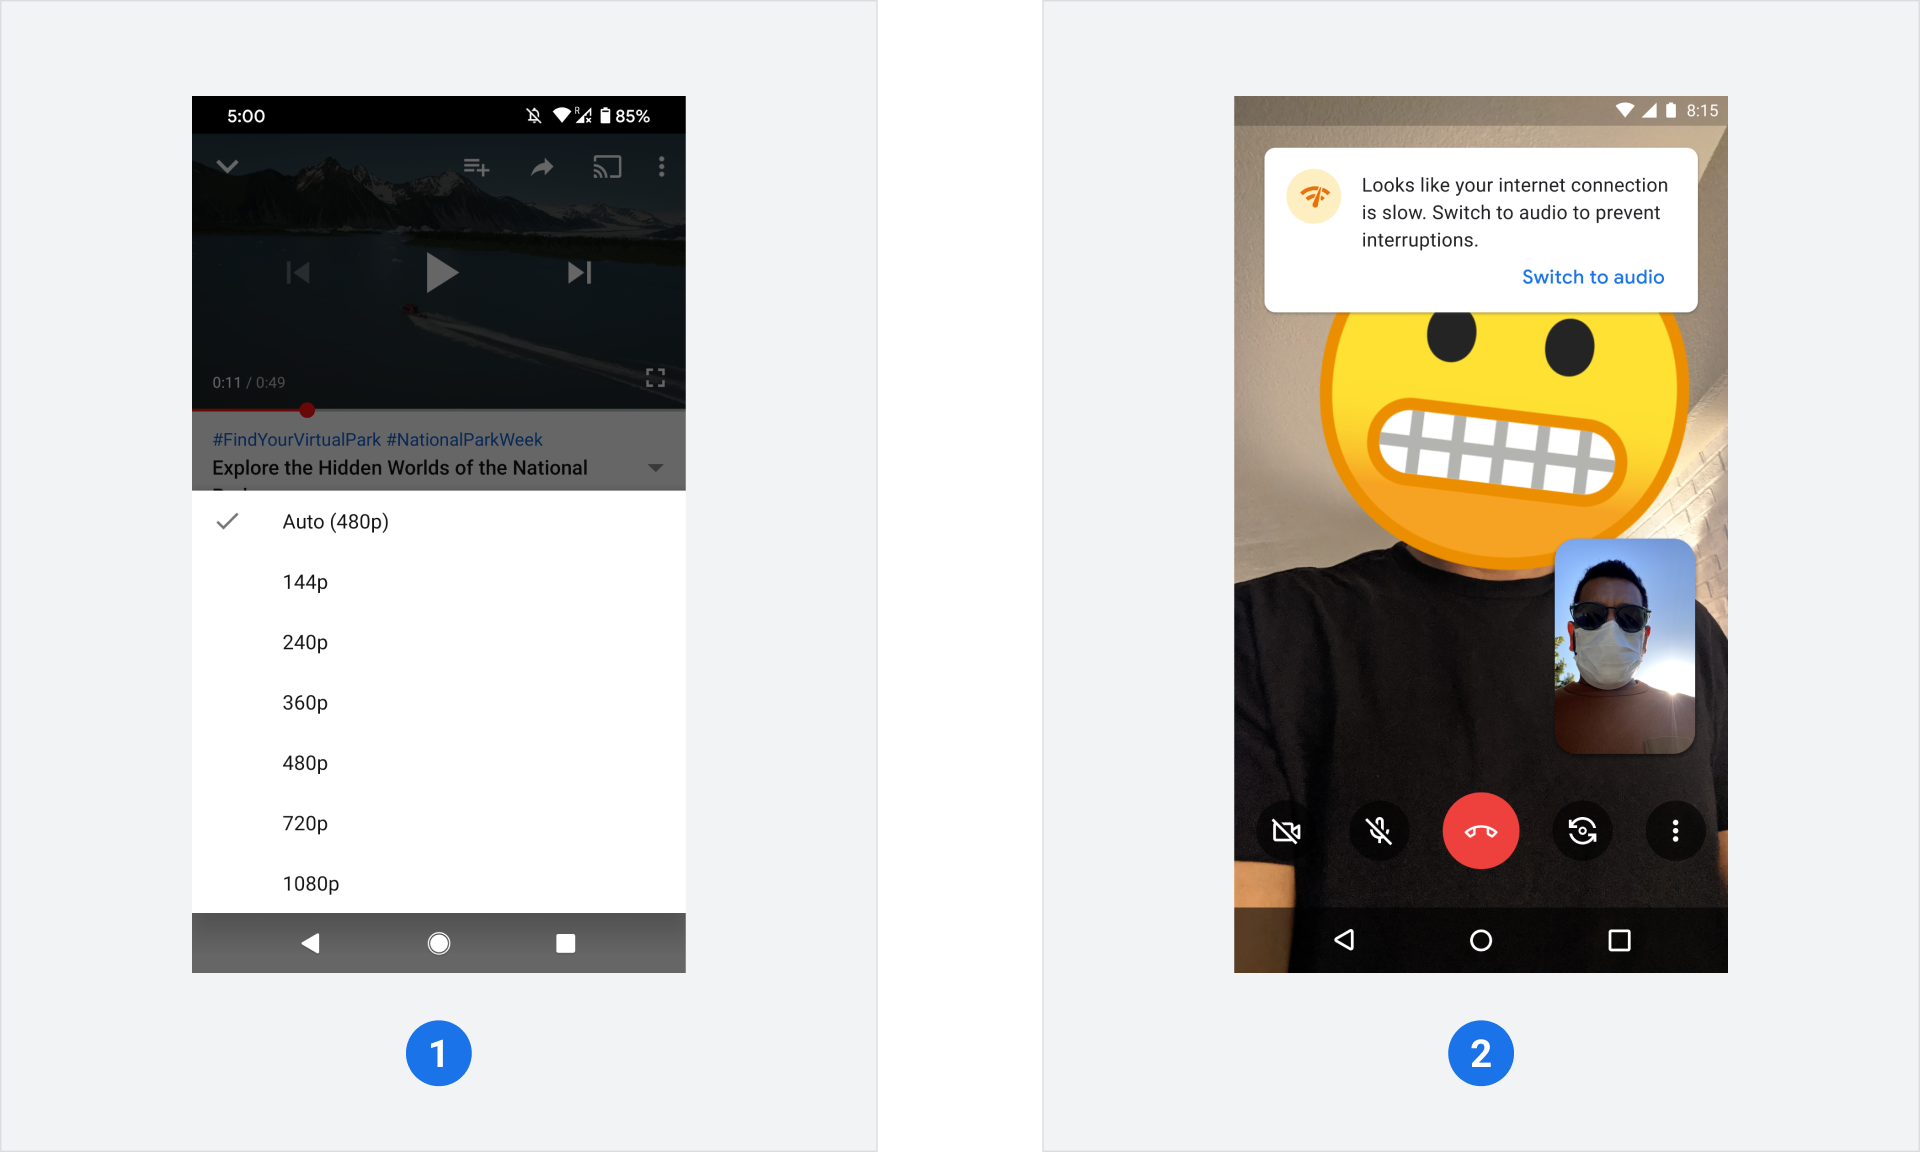 #1 YouTube bitrate streaming speeds from 144 to 1080p, #2 Cartoon character and masked man in video call